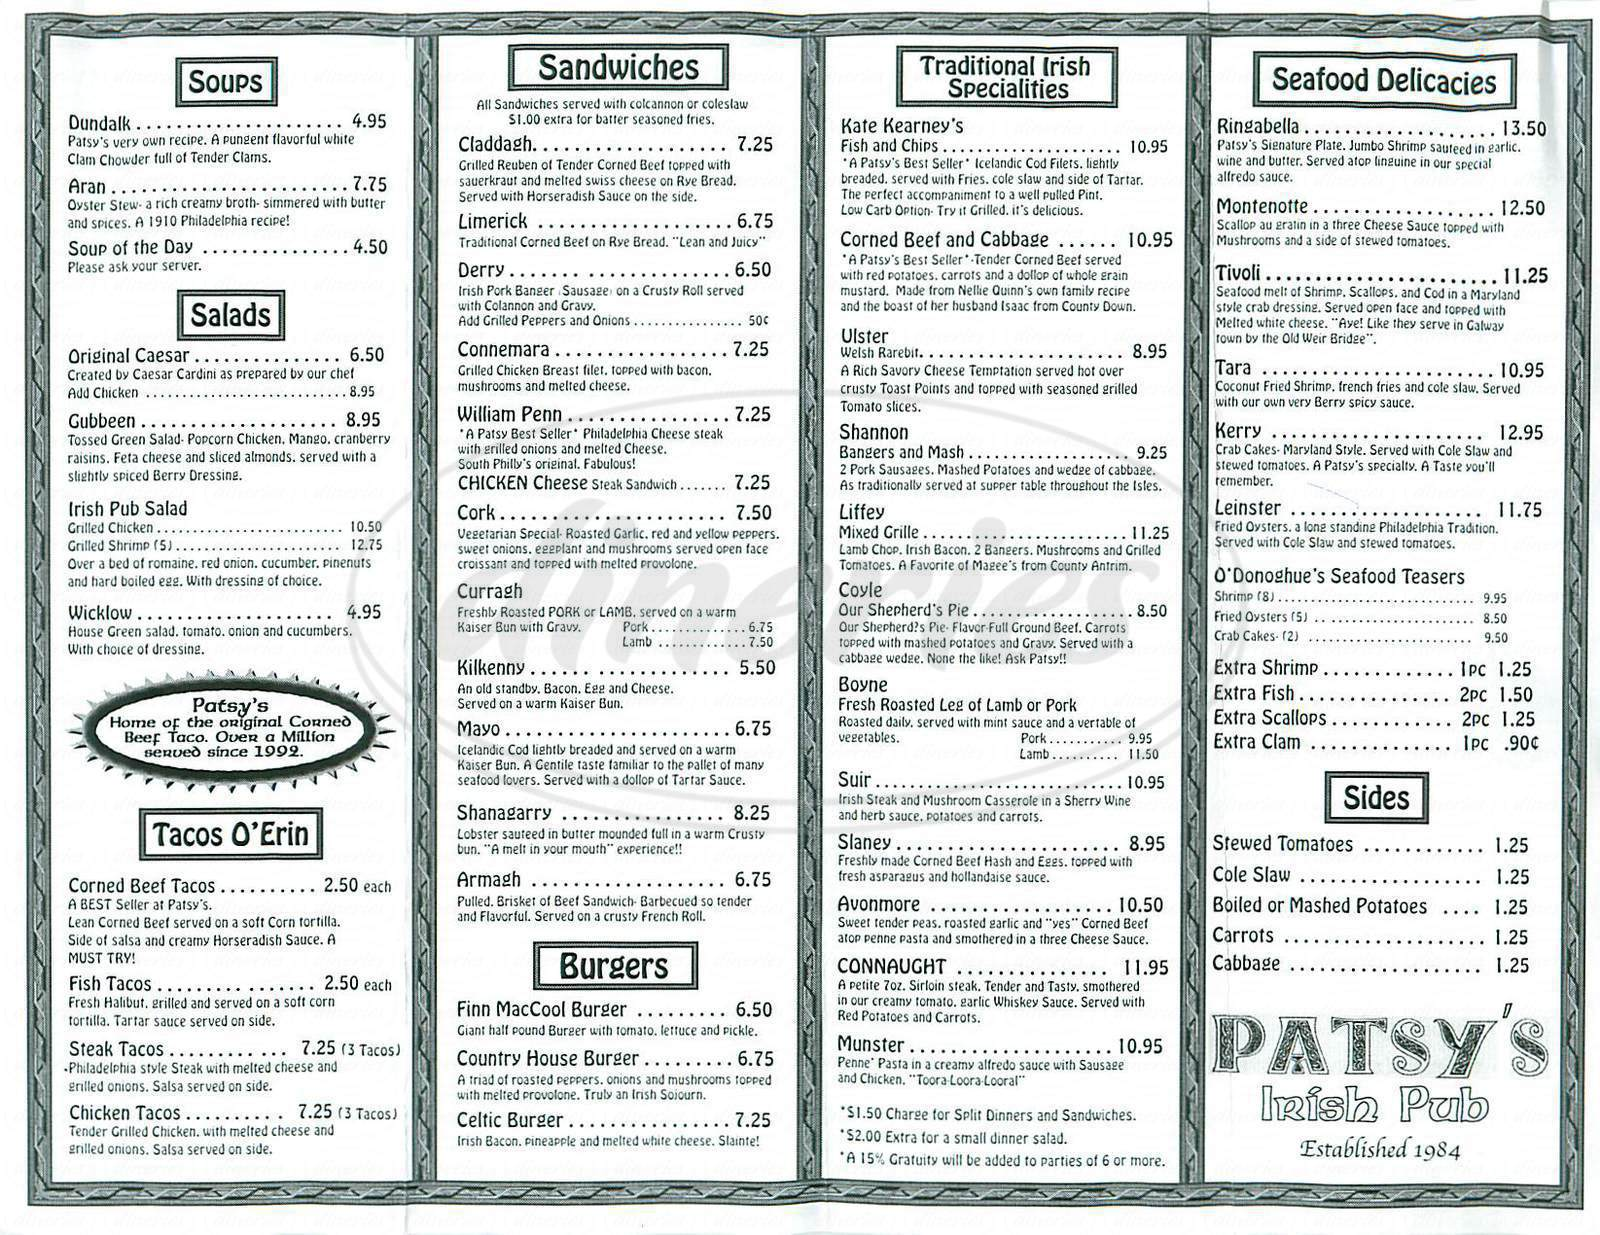 menu for Patsy's Irish Pub